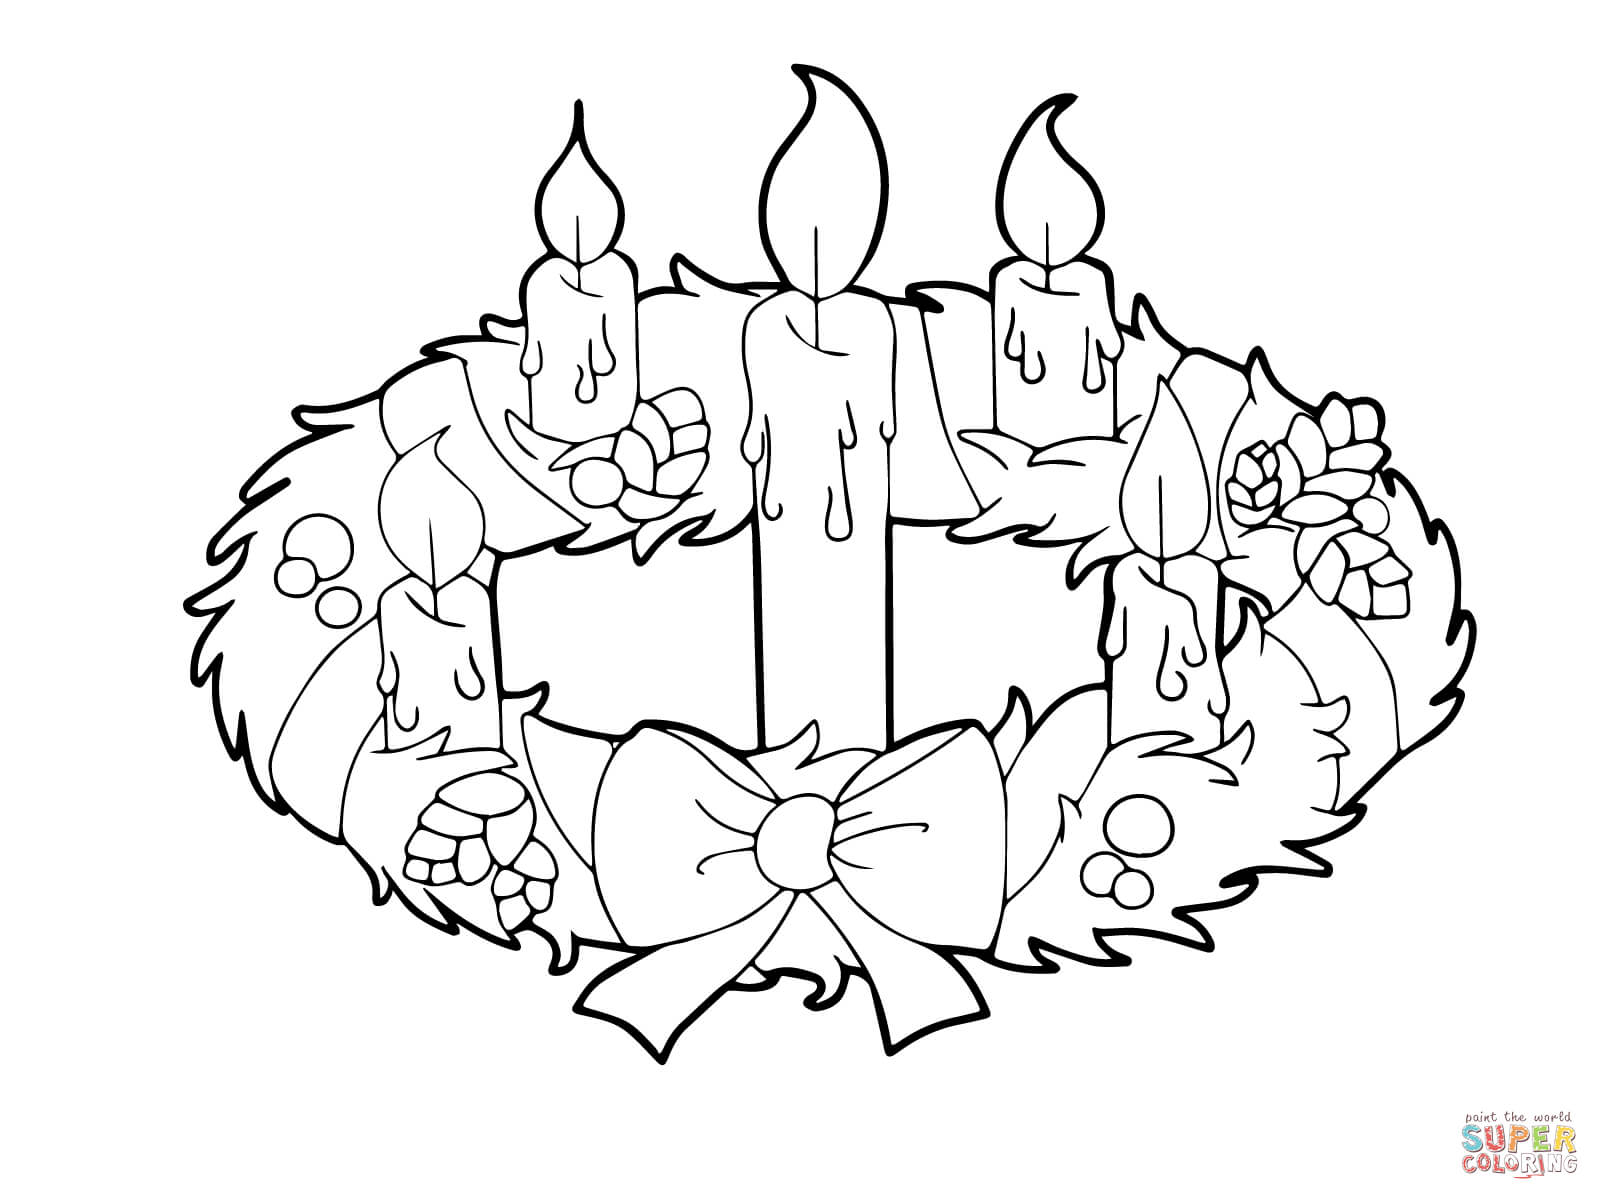 Free Advent Clipart Black And White, Download Free Clip Art.